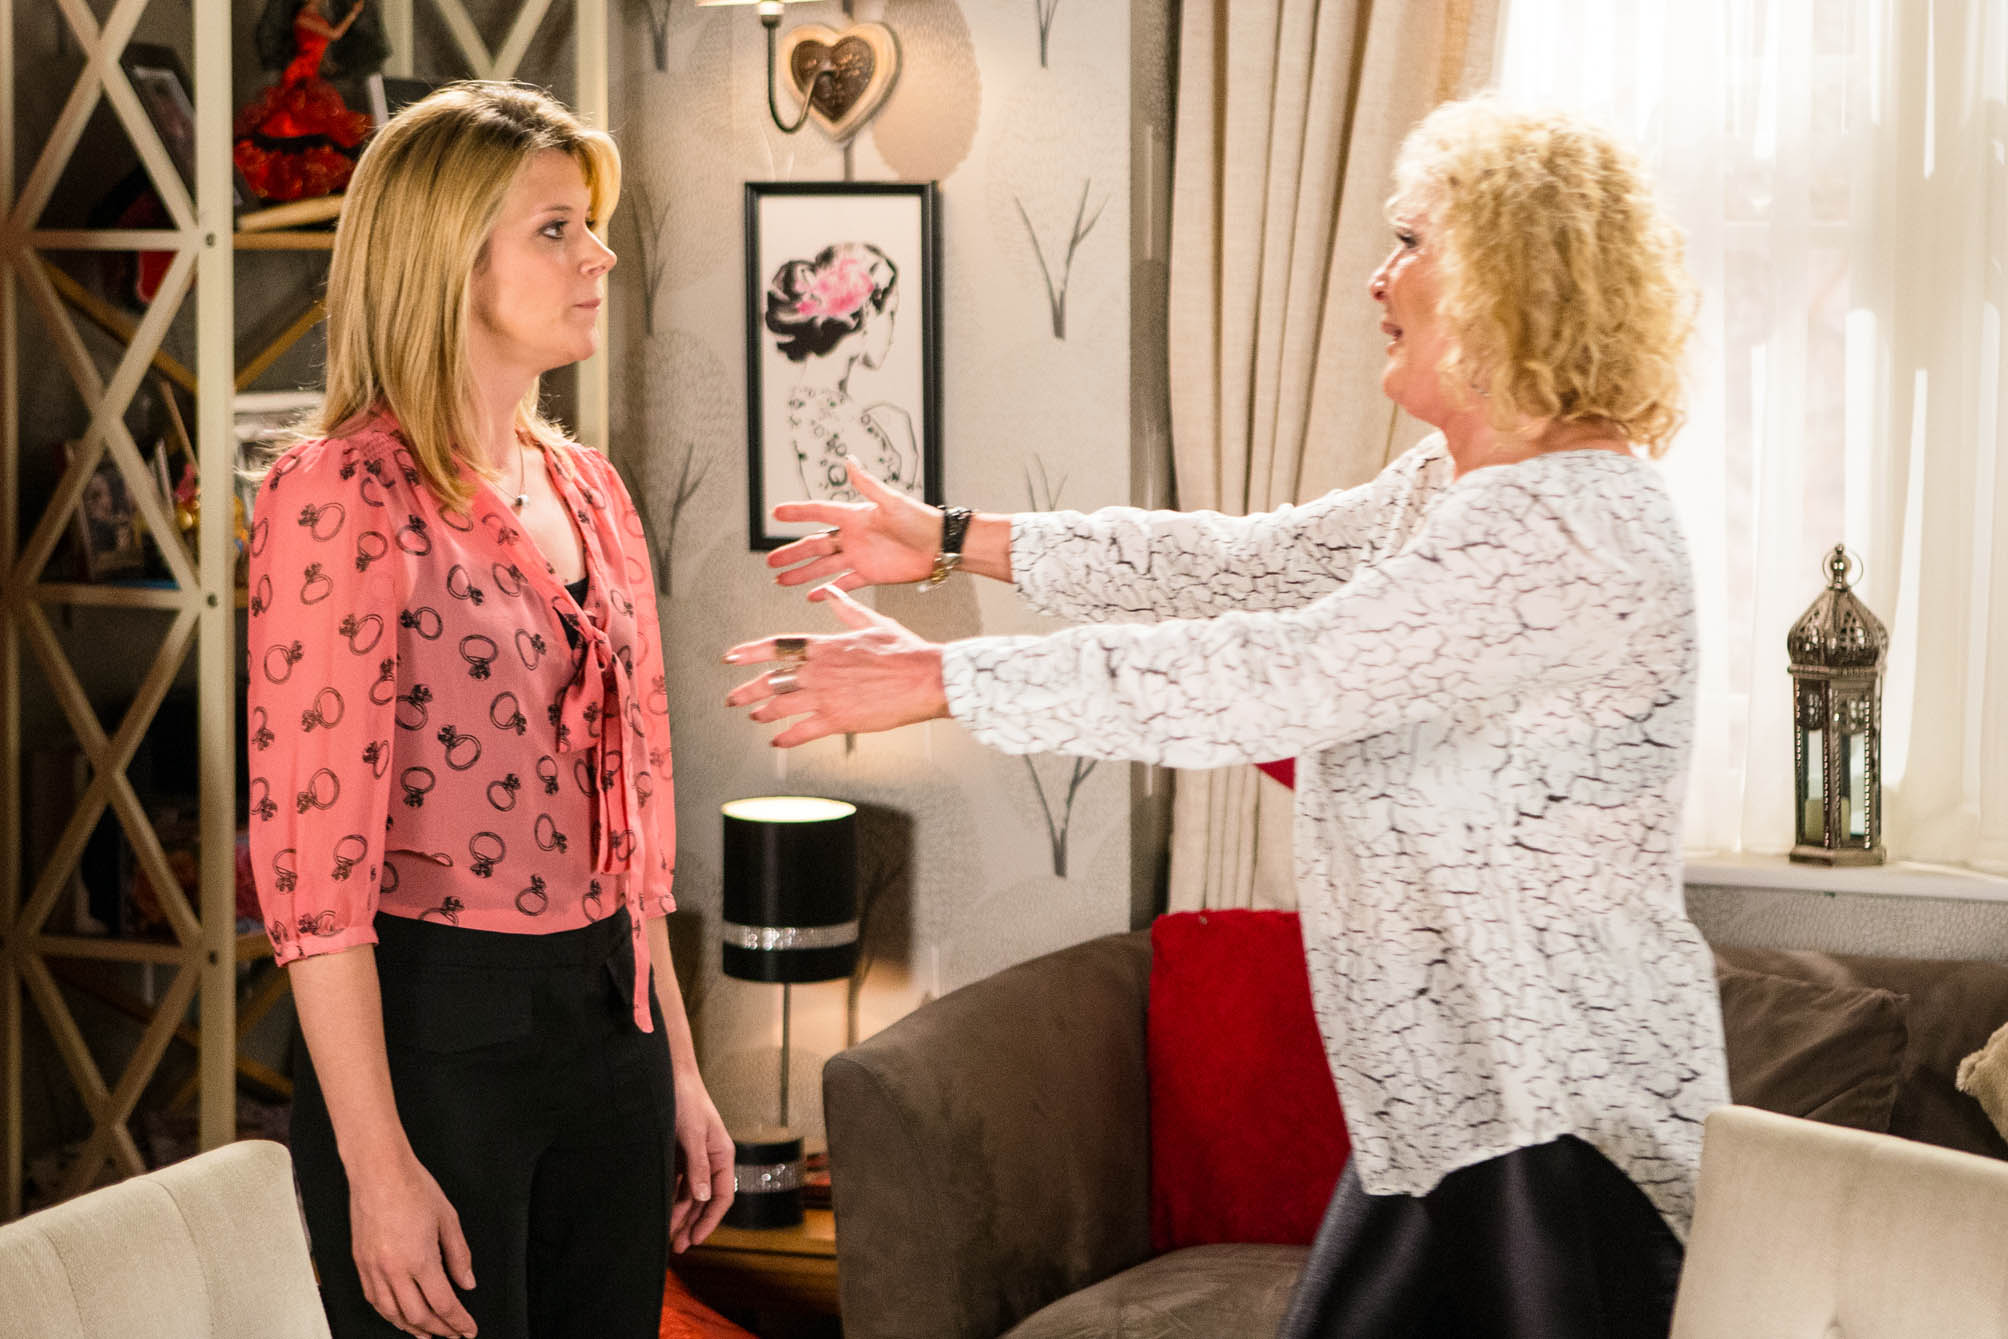 FROM ITV STRICT EMBARGO - NO USE BEFORE TUESDAY 9 AUGUST 2016 Coronation Street - Ep 8970 Wednesday 17 August 2016 Leanne Tilsley [JANE DANSON] calls to see Amy, Liz McDonald [BEVERLEY CALLARD] refuses to let her in and glancing at Leanne's stomach, explains Amy has chickenpox. Leanne realises with horror Liz knows she's pregnant. Leanne pours her heart out to Liz and explains how she wishes she could be with Nick but it's impossible as she's carrying Steve's baby. Reaching a decision, Leanne announces that from now on, the baby is her only priority. Picture contact: david.crook@itv.com on 0161 952 6214 Photographer - Mark Bruce This photograph is (C) ITV Plc and can only be reproduced for editorial purposes directly in connection with the programme or event mentioned above, or ITV plc. Once made available by ITV plc Picture Desk, this photograph can be reproduced once only up until the transmission [TX] date and no reproduction fee will be charged. Any subsequent usage may incur a fee. This photograph must not be manipulated [excluding basic cropping] in a manner which alters the visual appearance of the person photographed deemed detrimental or inappropriate by ITV plc Picture Desk. This photograph must not be syndicated to any other company, publication or website, or permanently archived, without the express written permission of ITV Plc Picture Desk. Full Terms and conditions are available on the website www.itvpictures.com